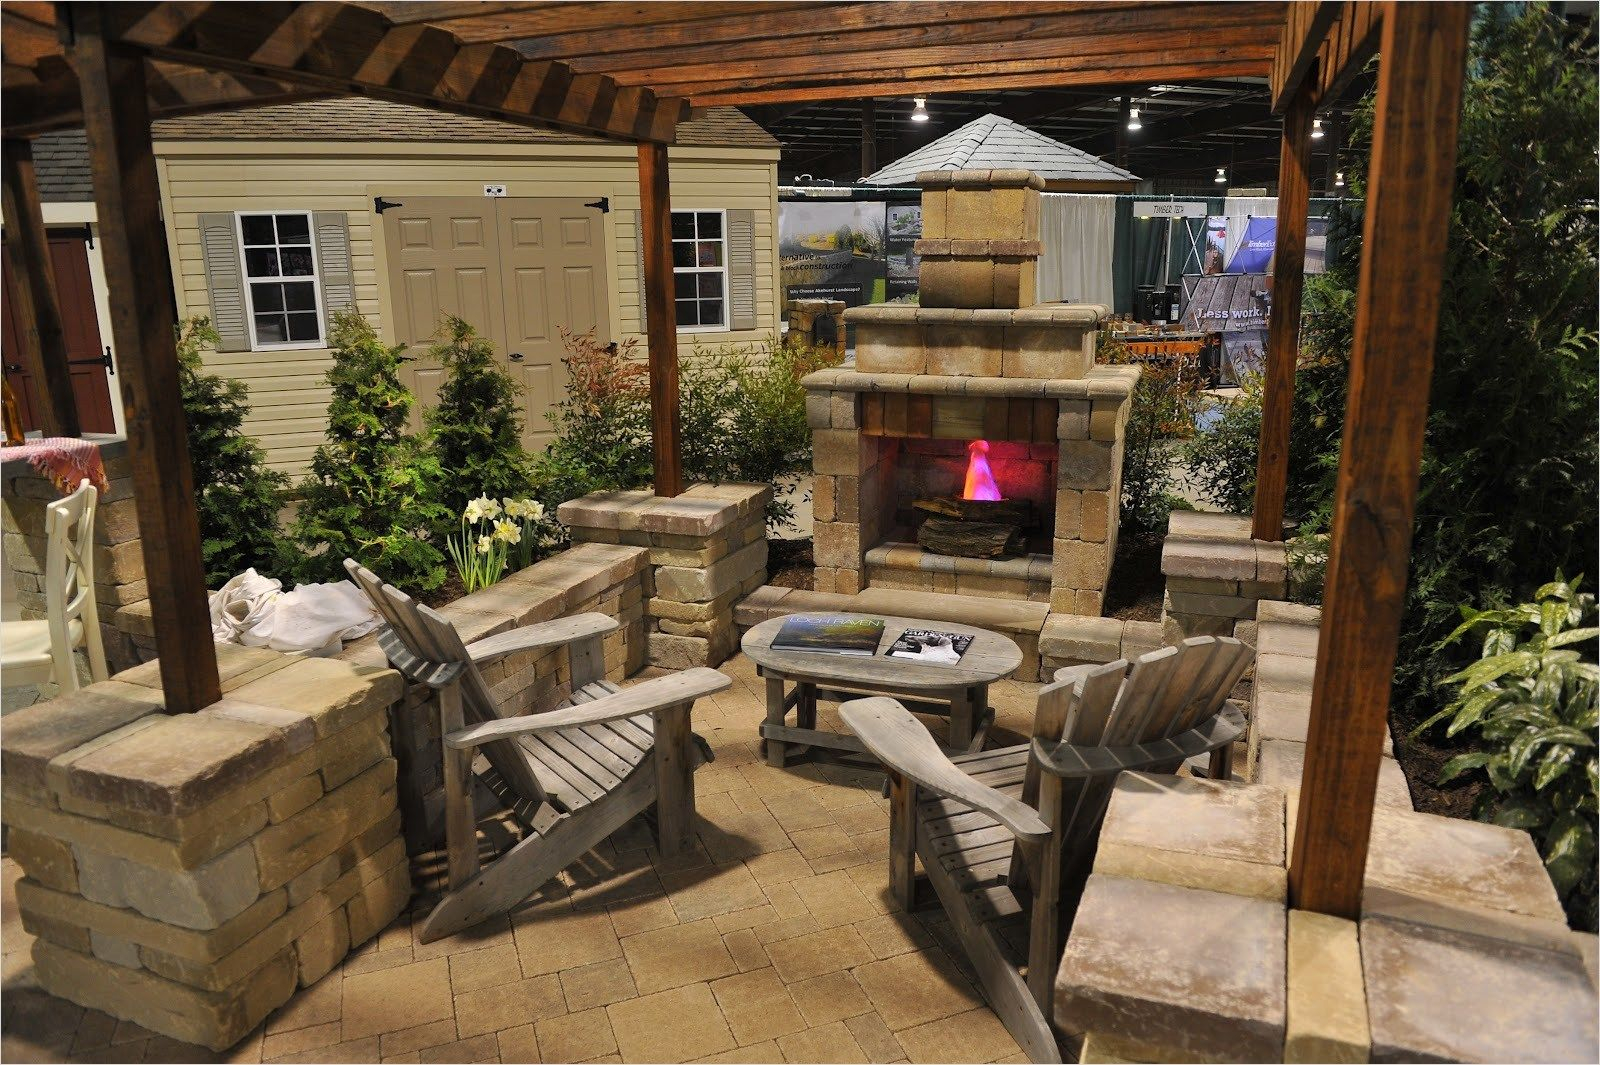 45 Perfect Backyard Bbq Landscaping Ideas Home Outdoor Ideas inside Backyard Entertainment Ideas